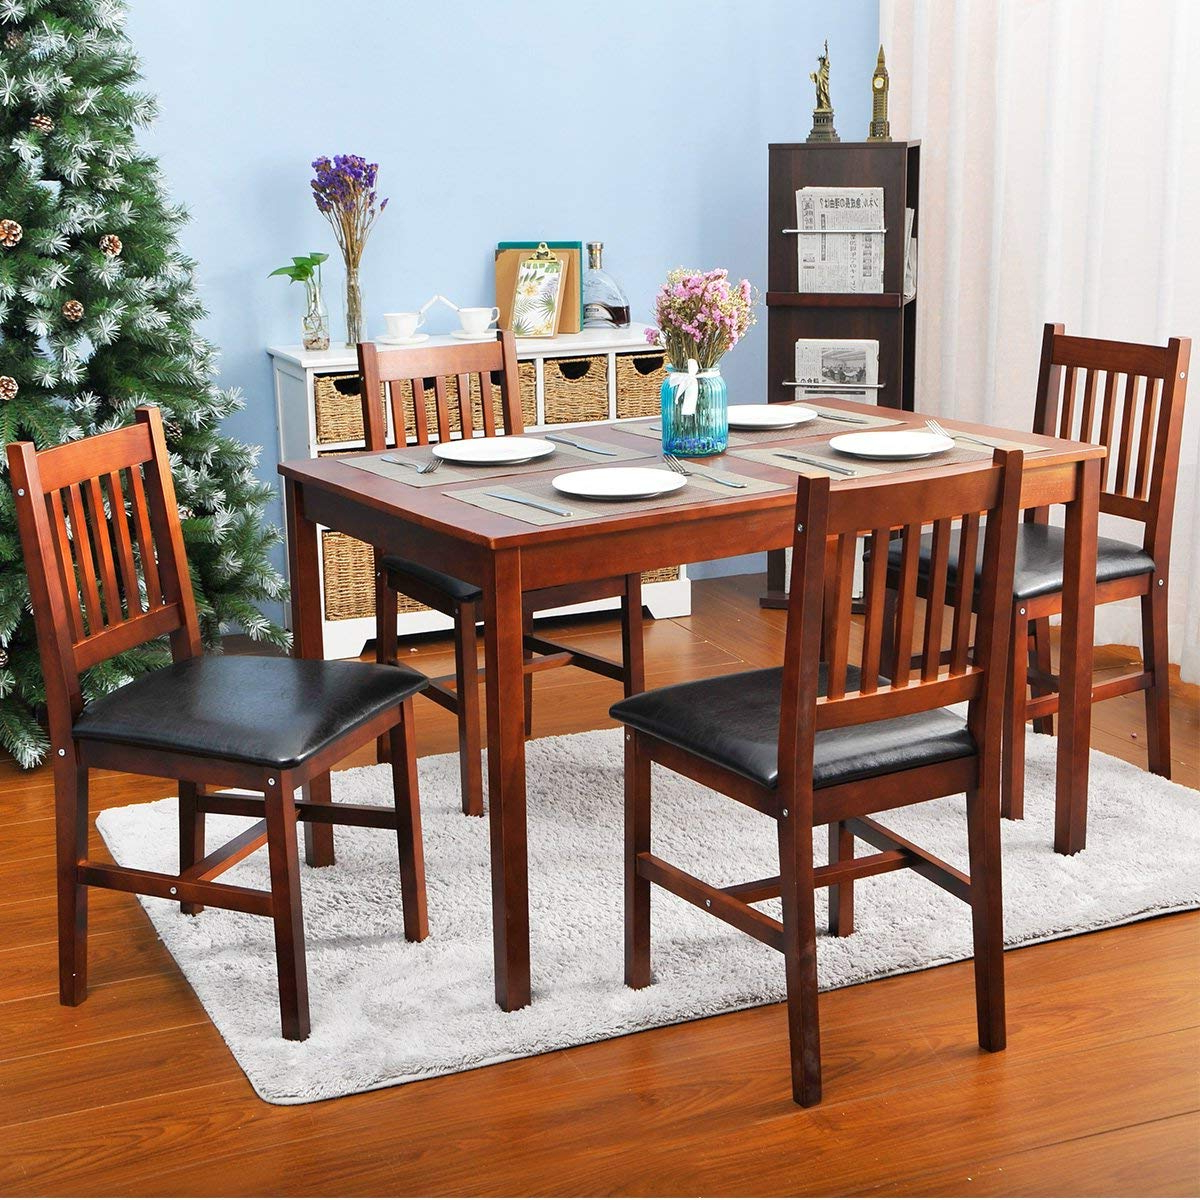 Trendy Dining Table Chair Set & Simple Living Olin Dining Sets Sc 1 St For Kieffer 5 Piece Dining Sets (View 15 of 20)